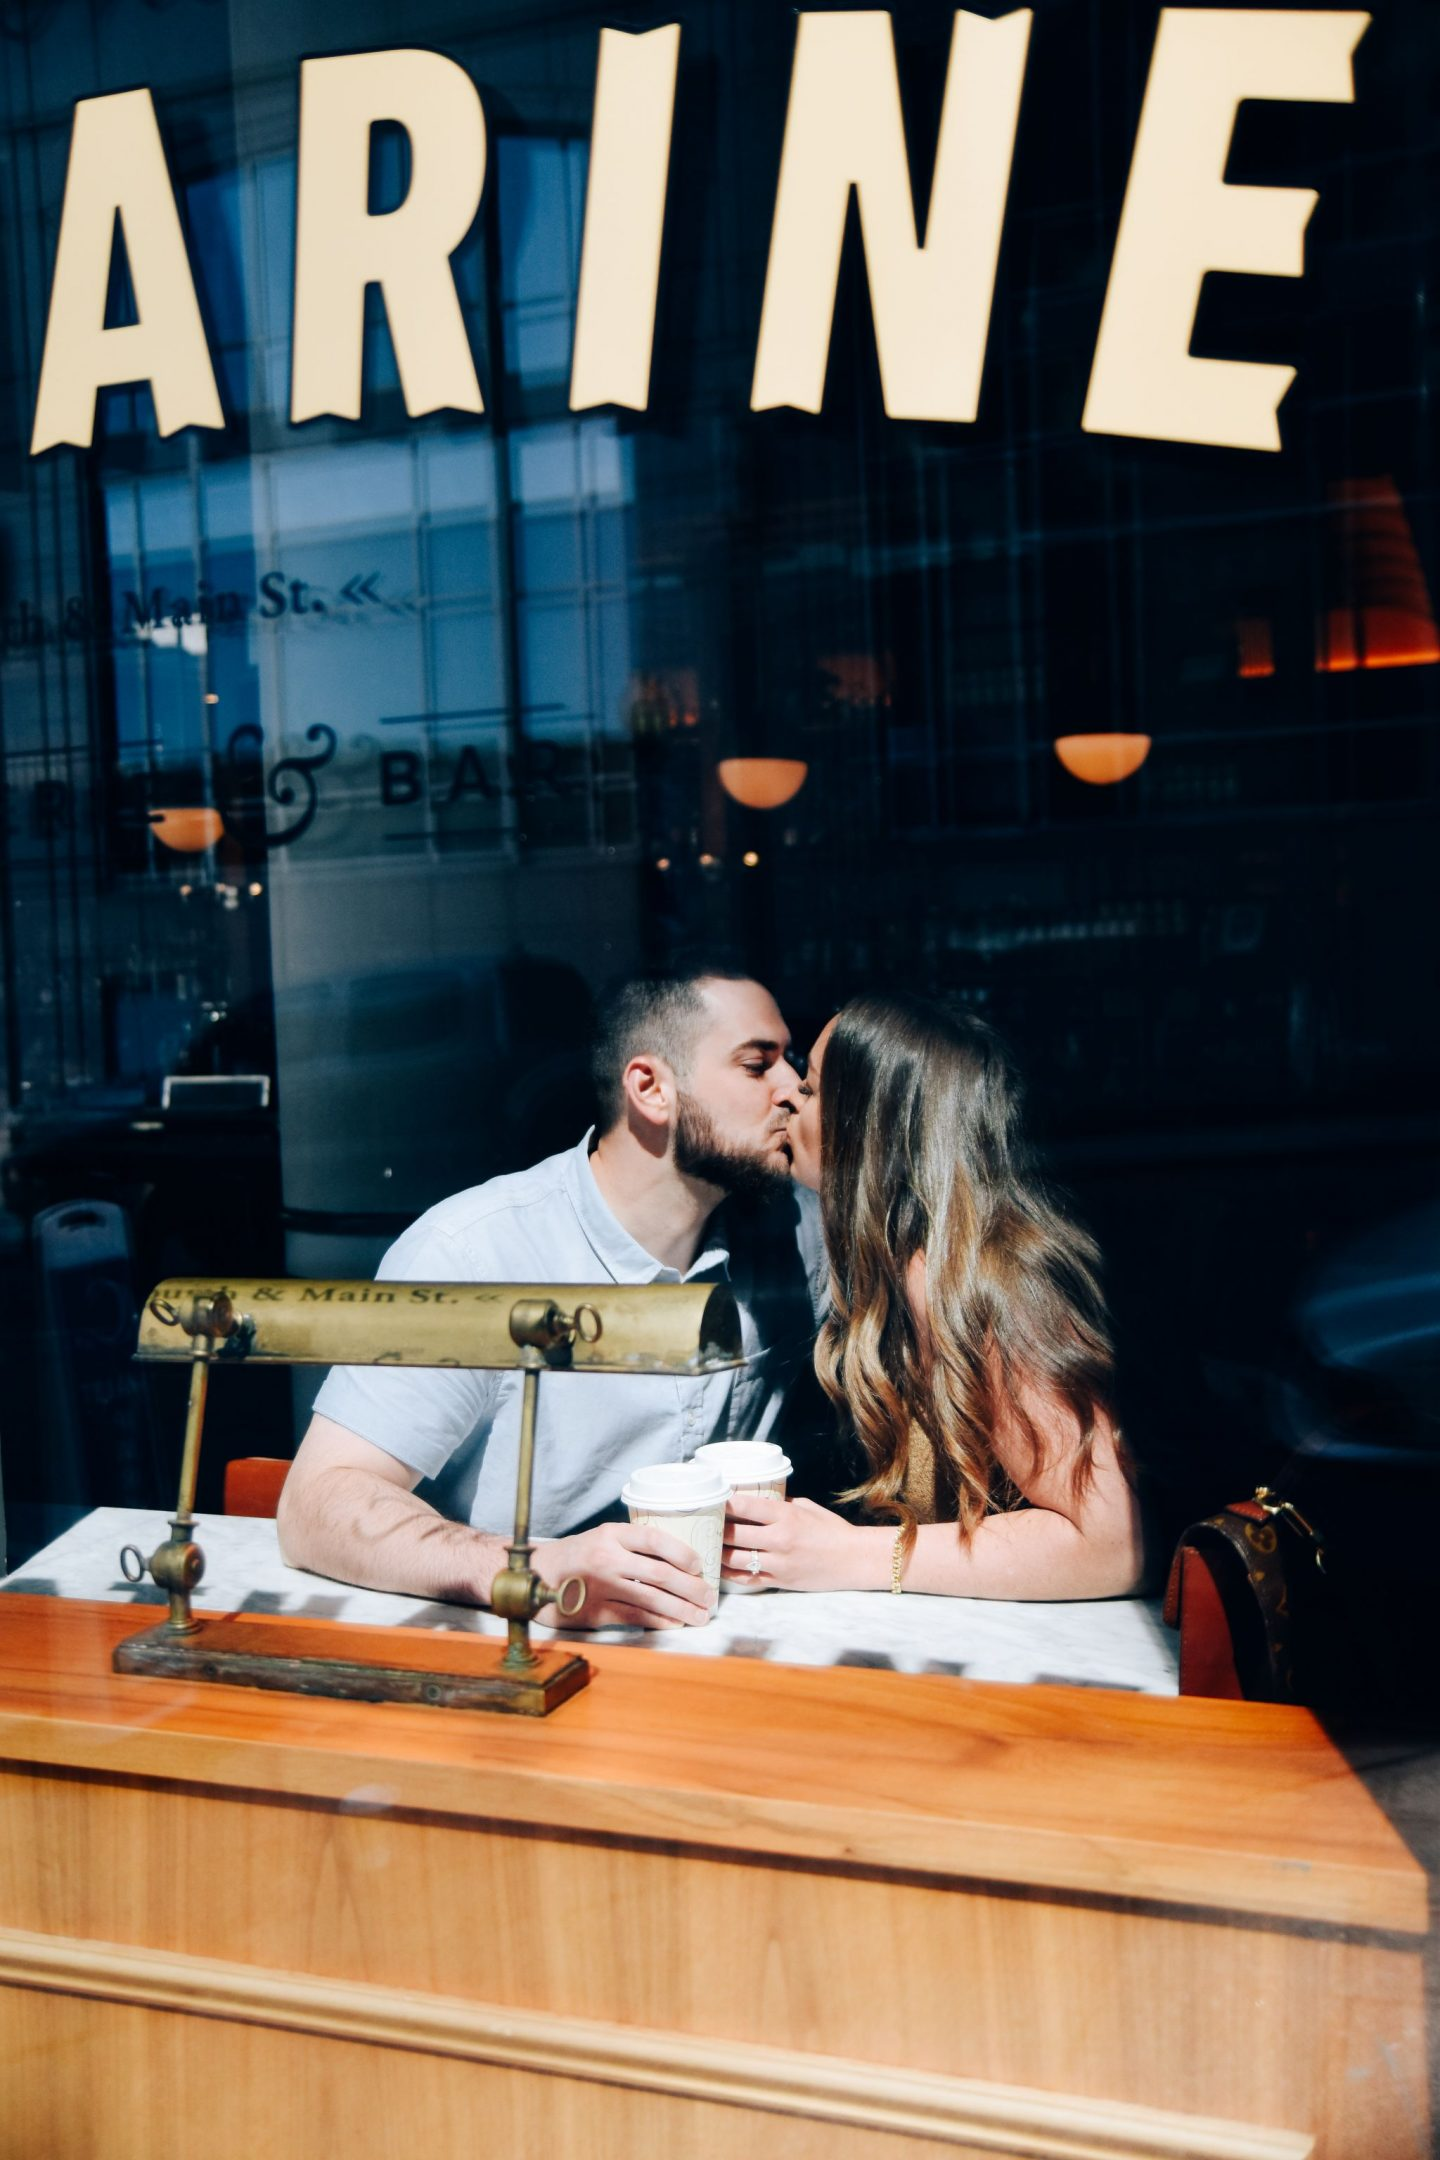 Couple Kissing in Coffee Shop